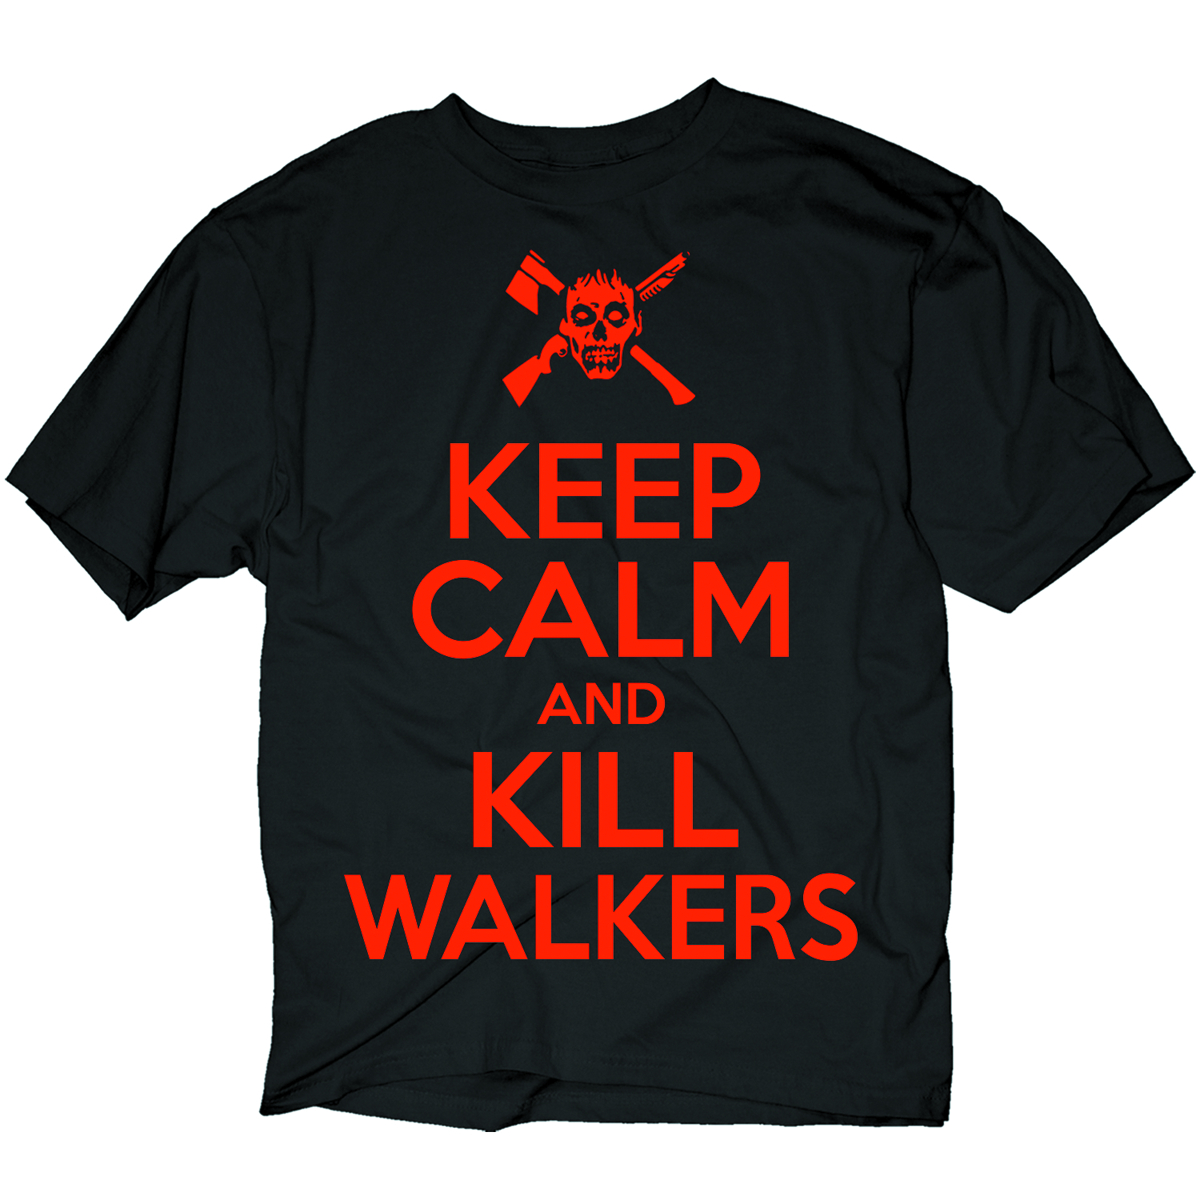 WALKING DEAD KEEP CALM KILL WALKERS PX BLK T/S SM